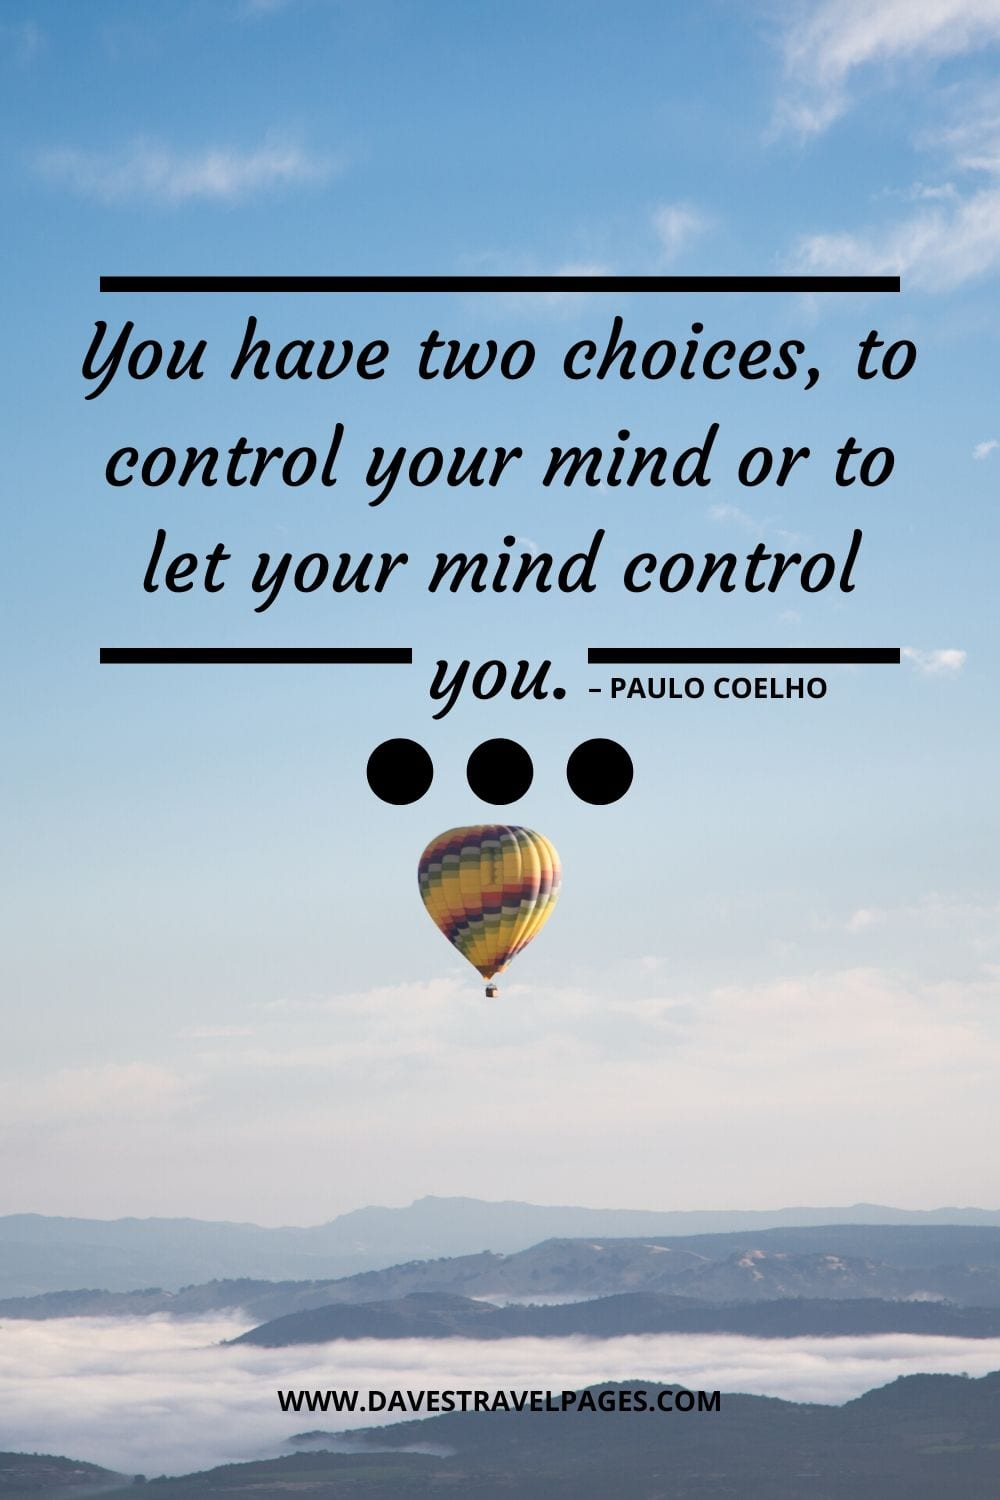 """You have two choices, to control your mind or to let your mind control you."" – Paulo Coelho"